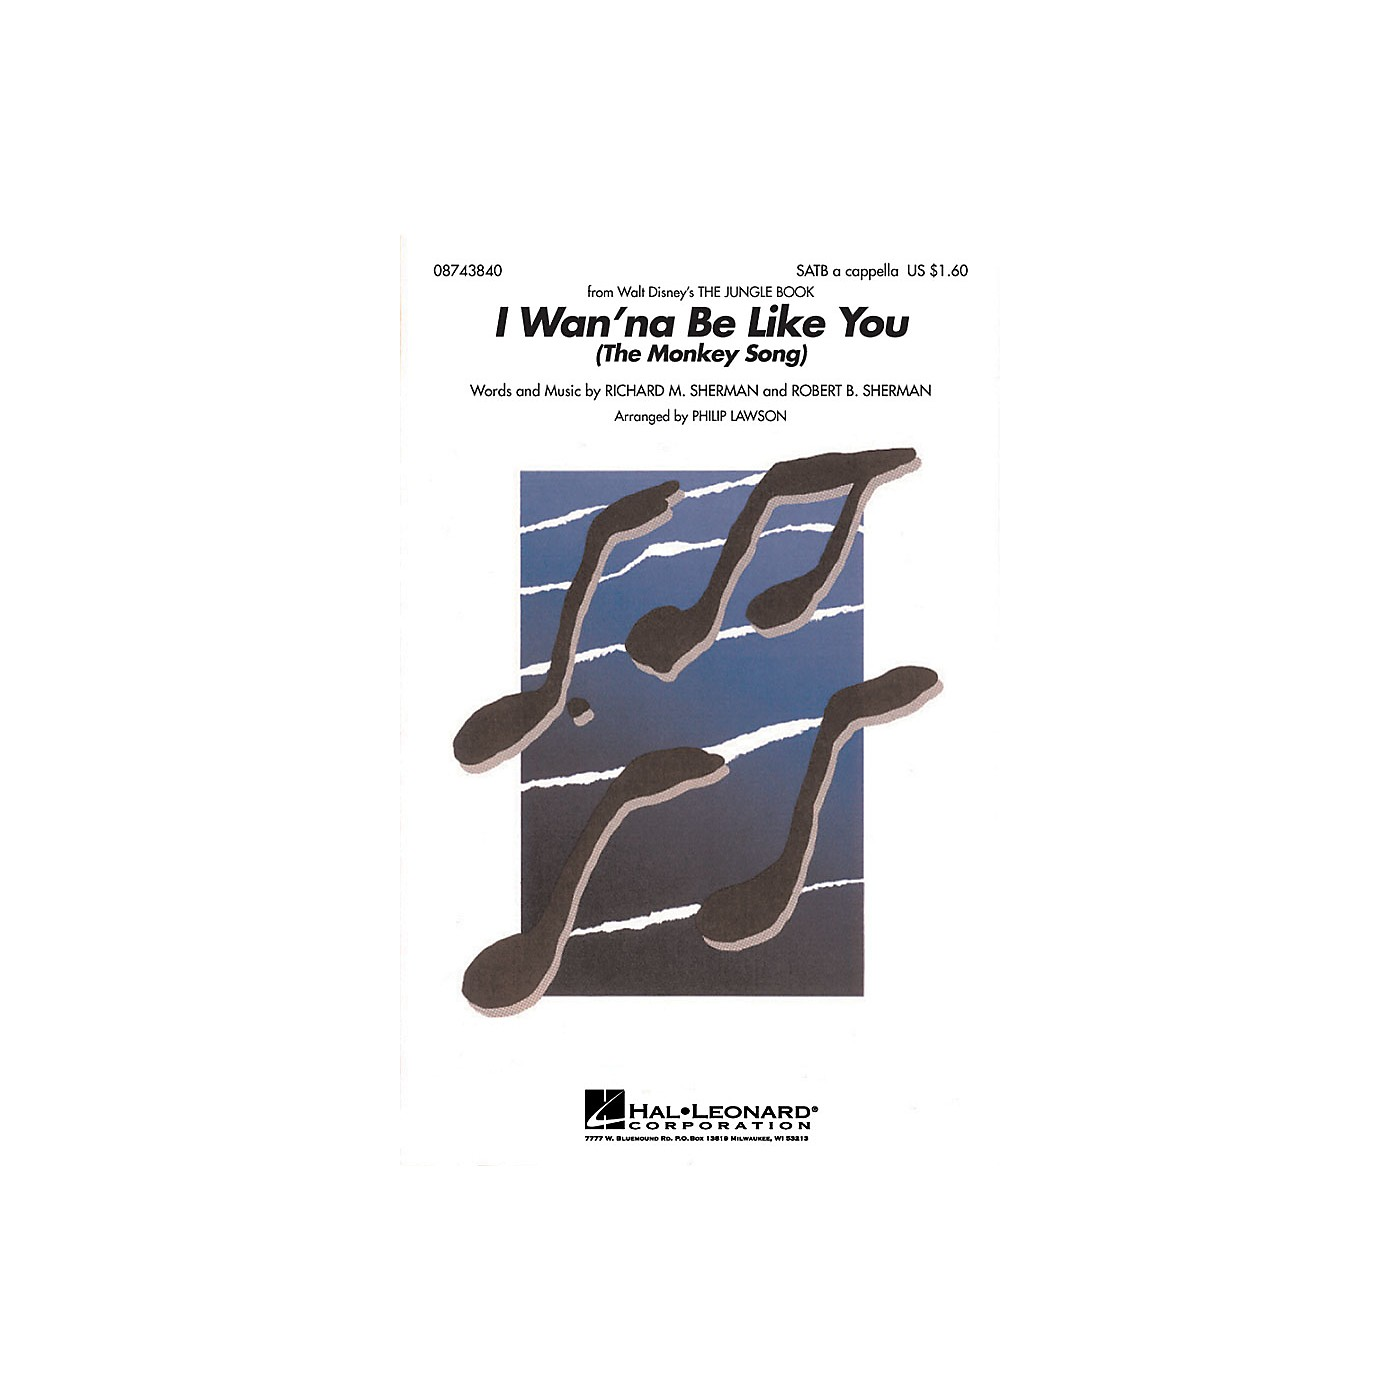 Hal Leonard I Wanna Be Like You (from The Jungle Book) SATB a cappella arranged by Philip Lawson thumbnail